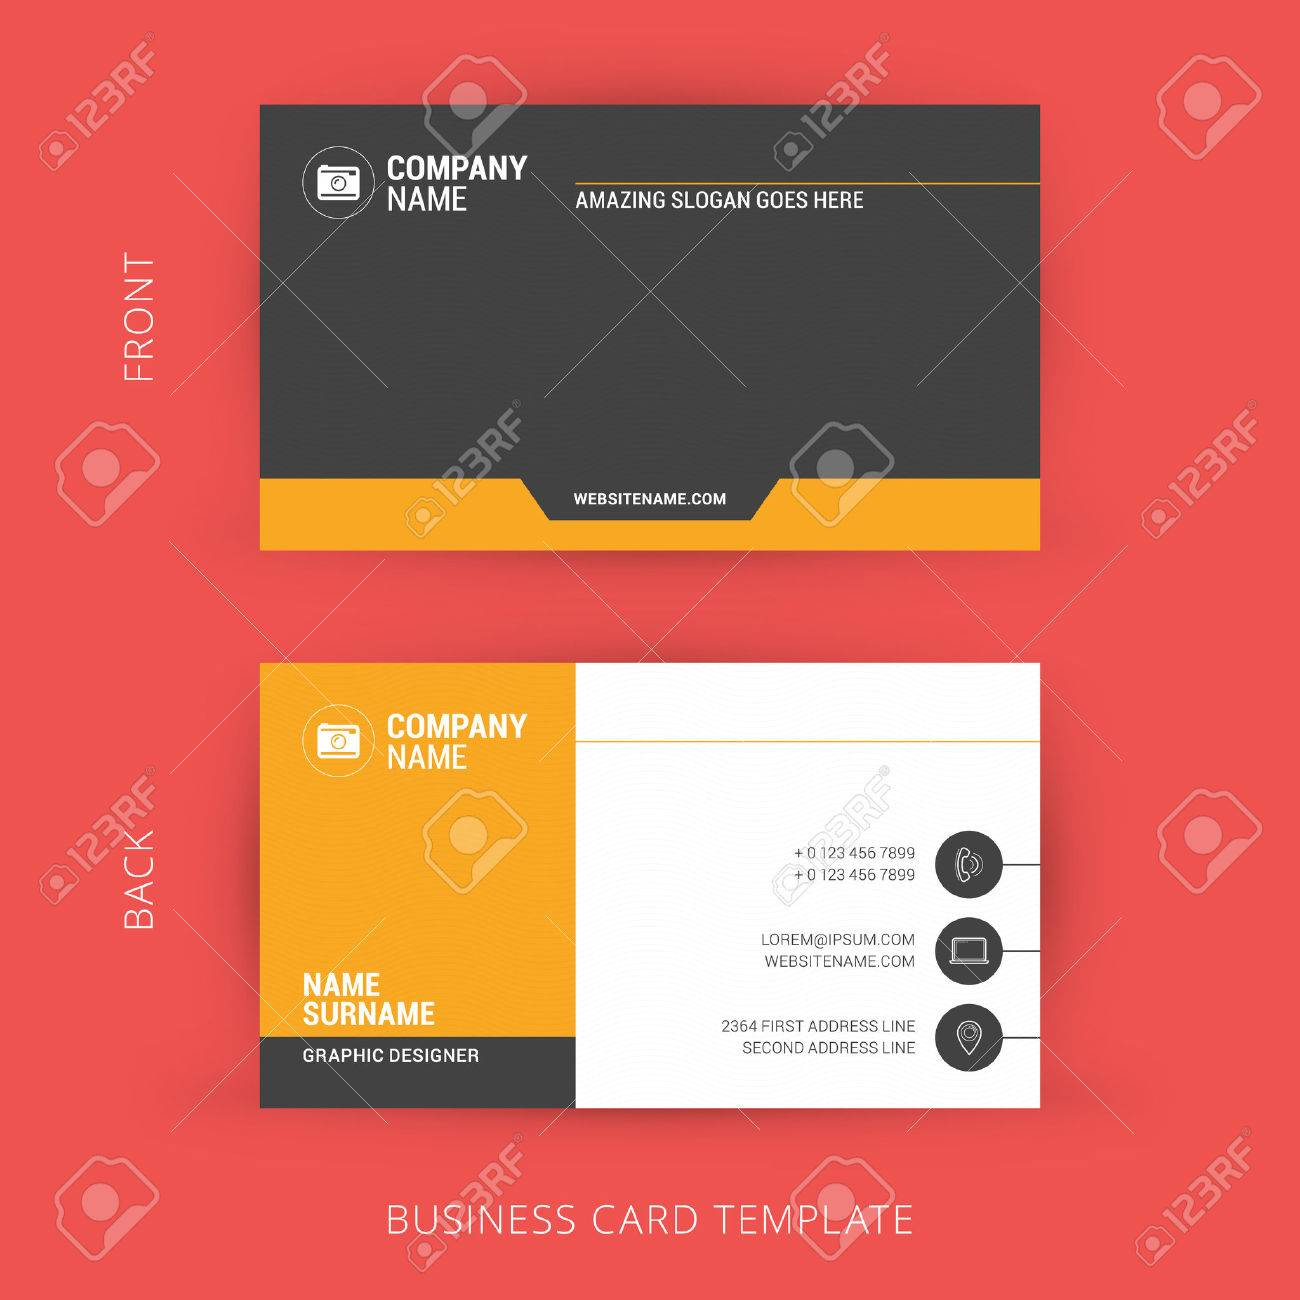 Creative And Clean Business Card Template. Flat Design Royalty Free ...